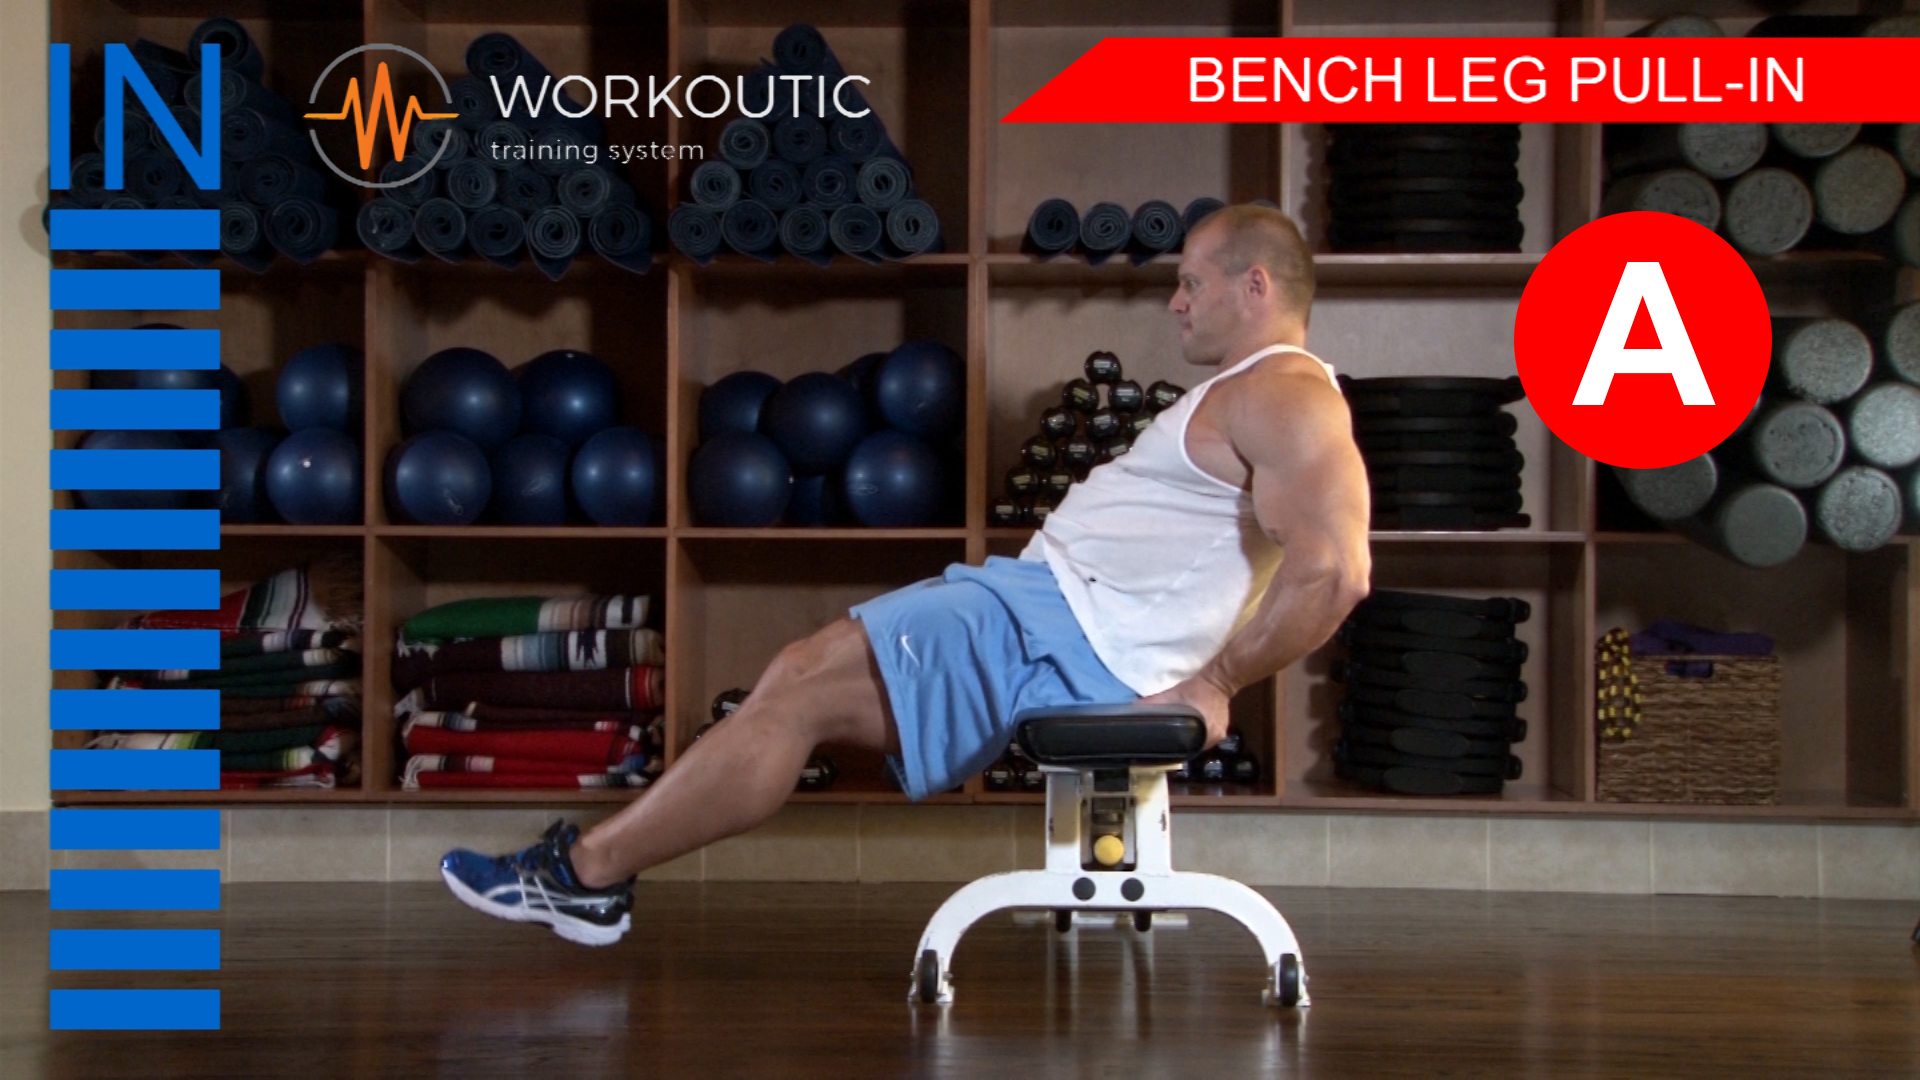 Abs Exercises - Workutic - 6 pack special - Bench Leg Pull In Inhale